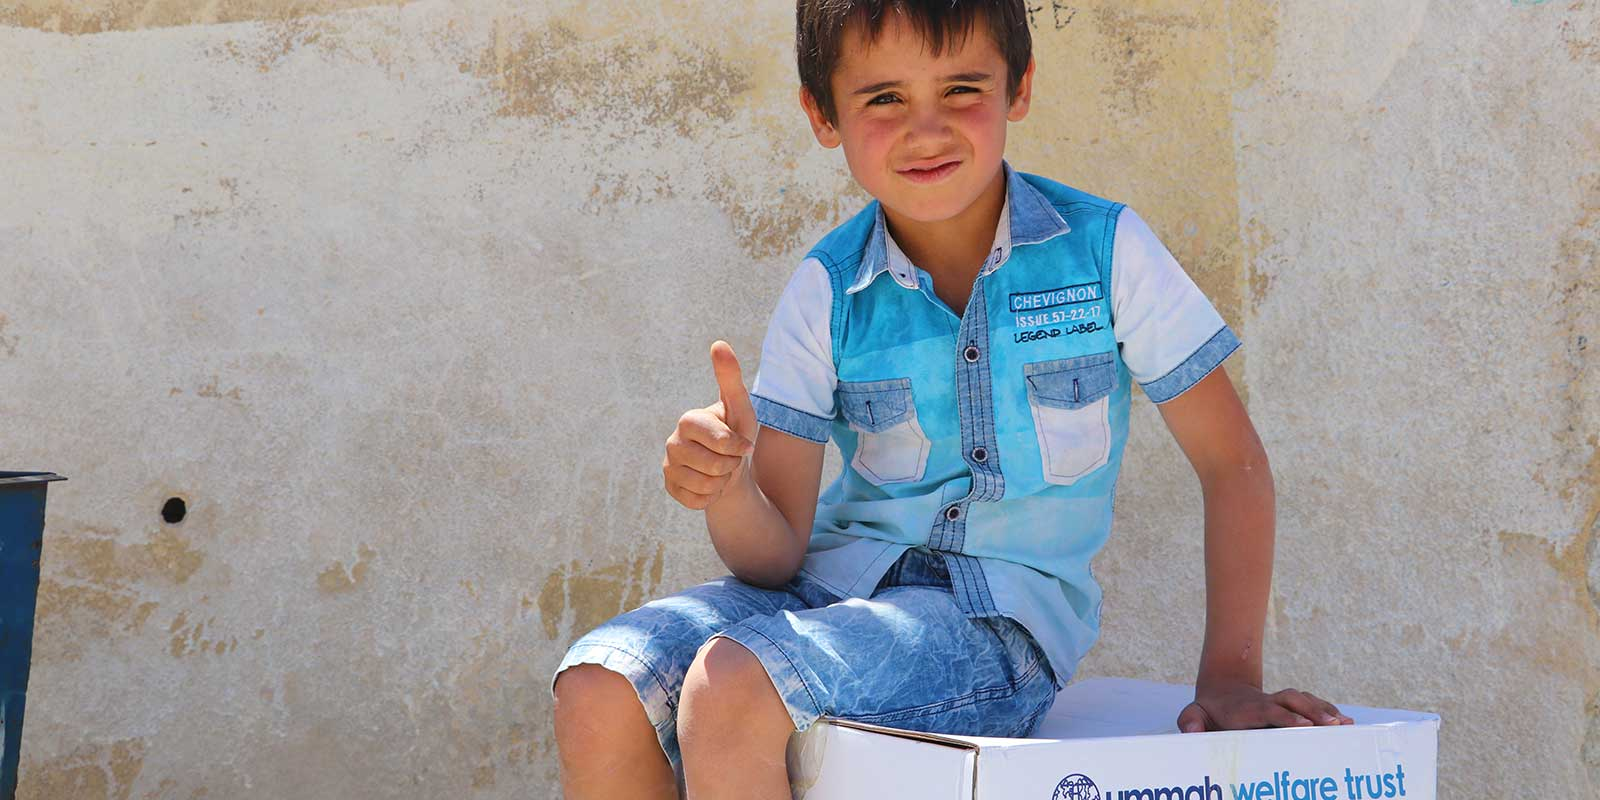 Displaced Syria Child Given Food